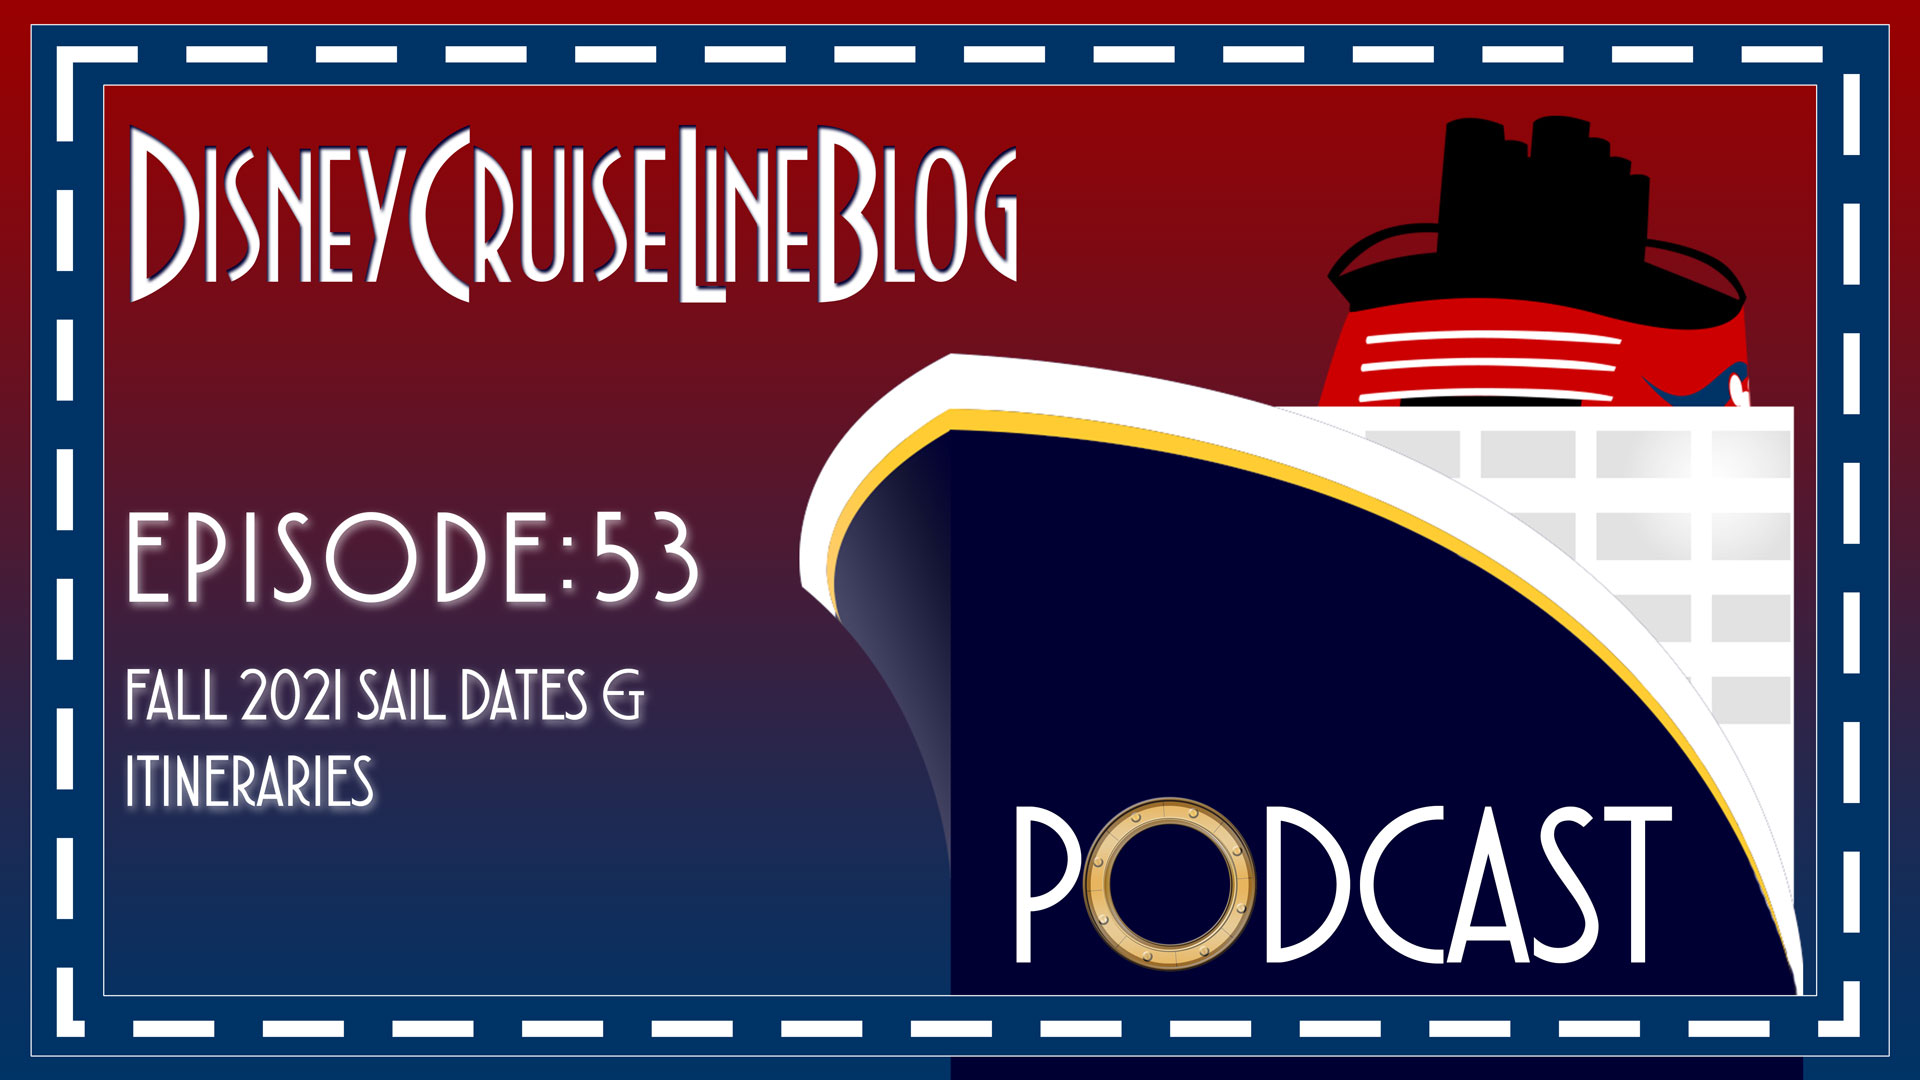 DCL Blog Podcast Episode 53 Itinerary Announcement Fall 2021